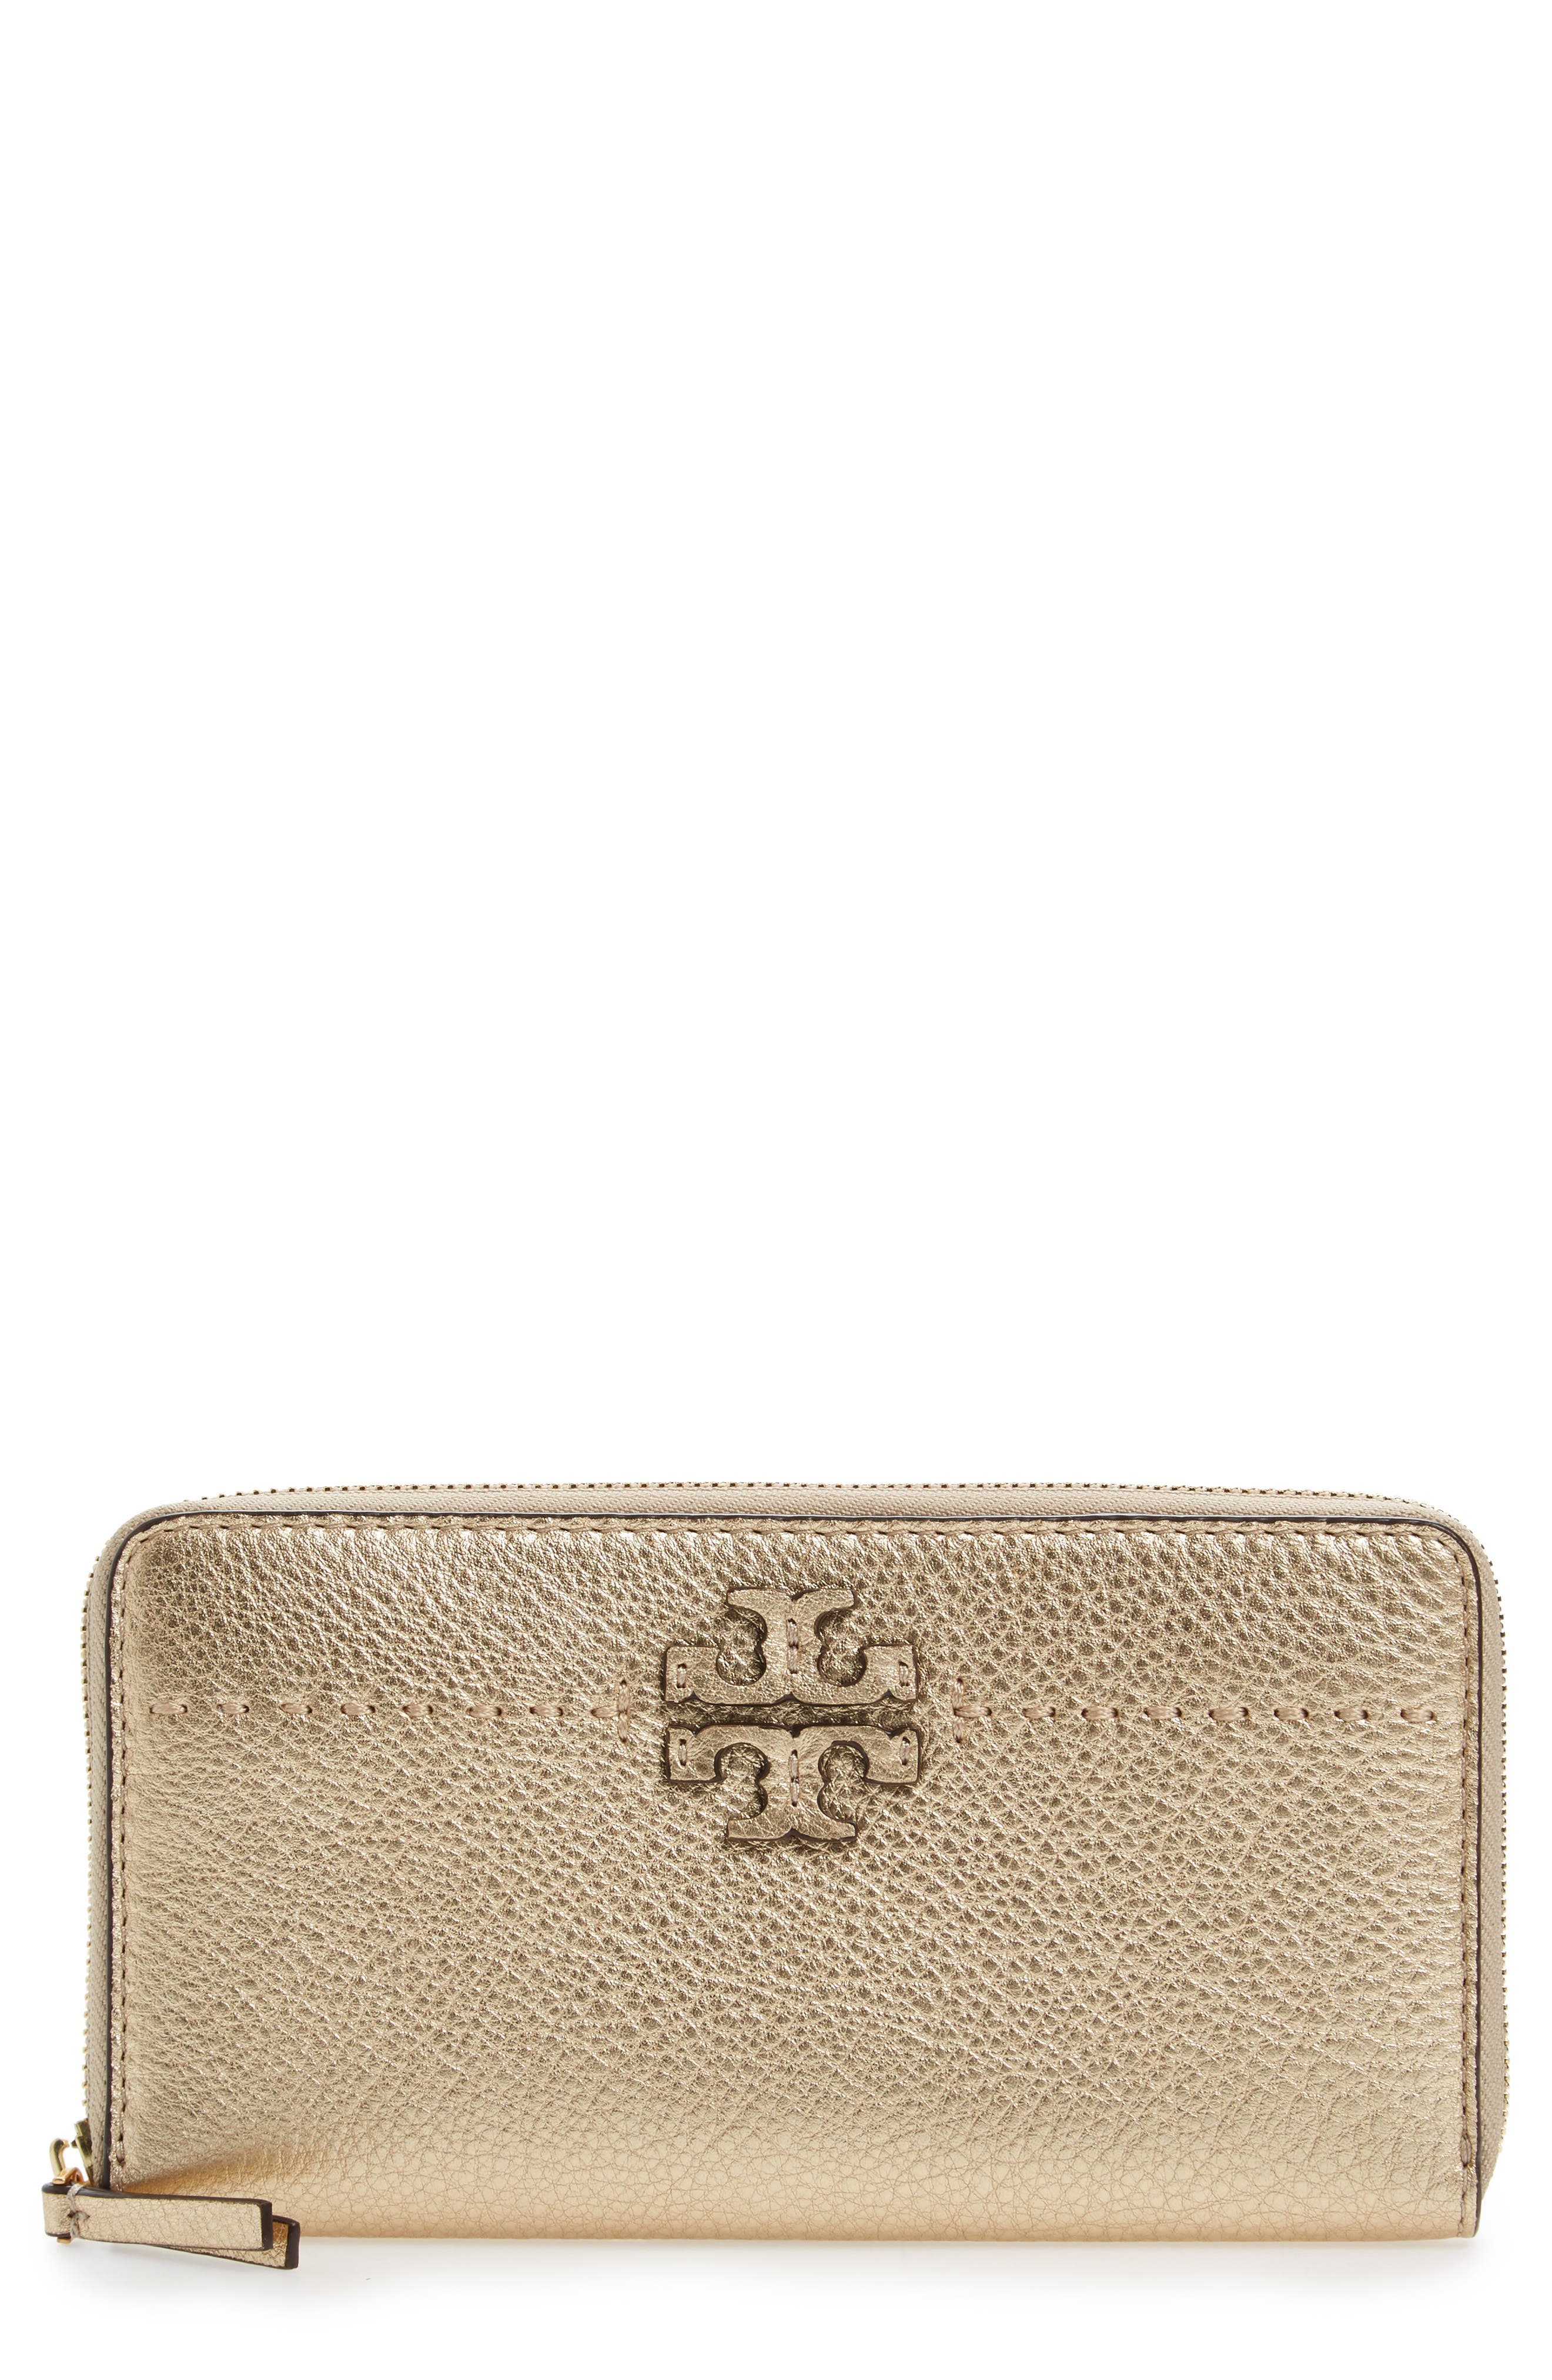 McGraw Leather Continental Wallet,                             Main thumbnail 1, color,                             Gold